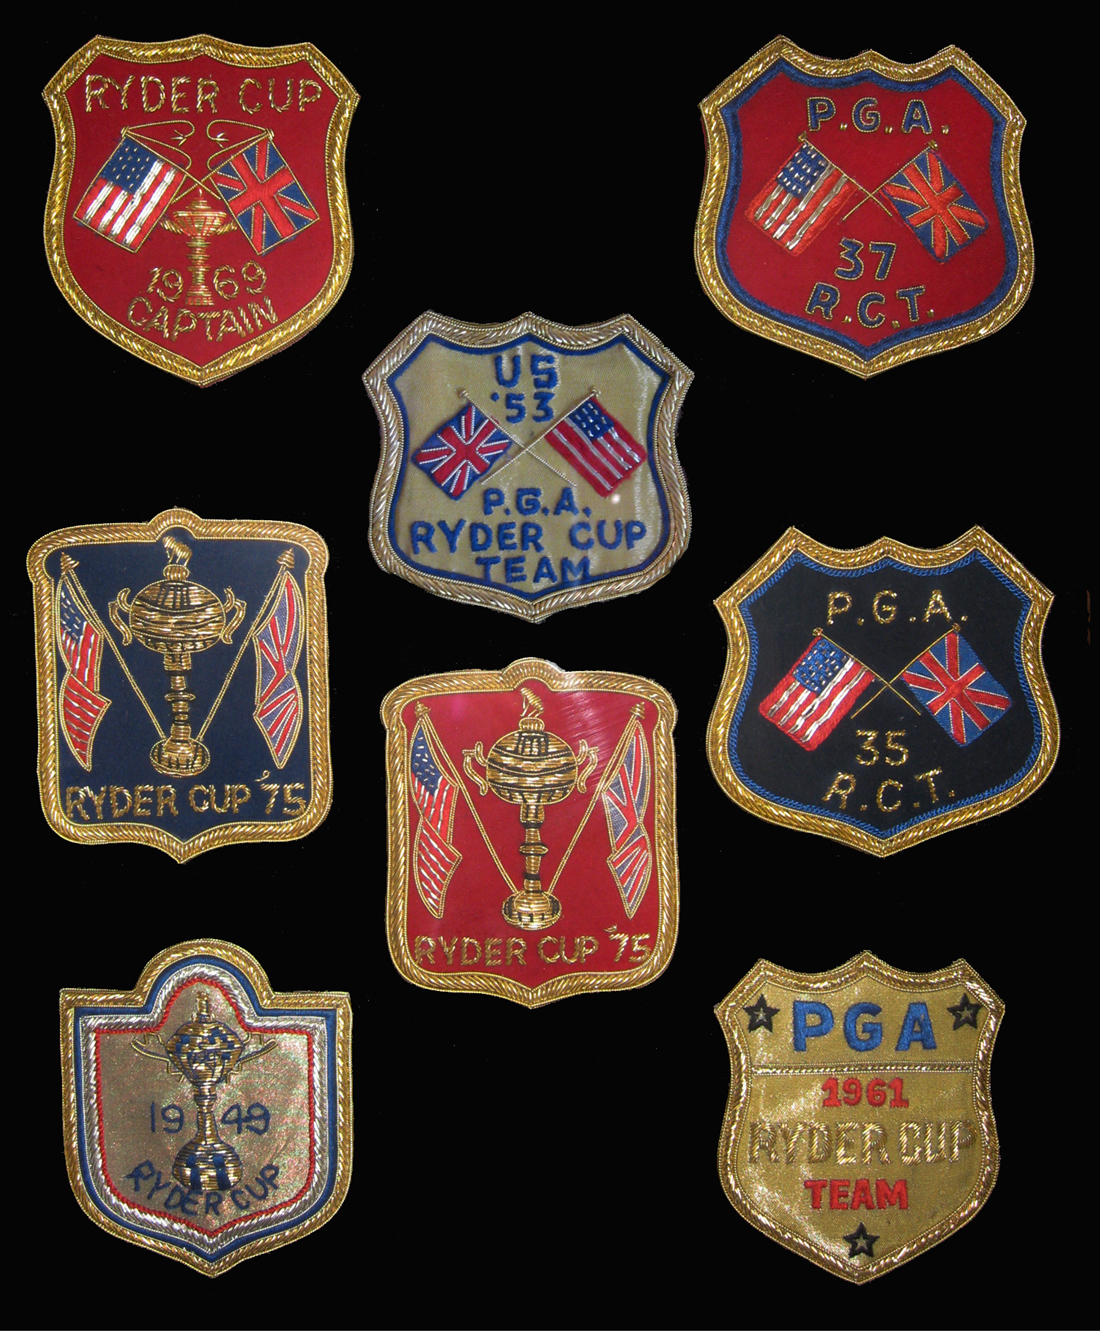 RYDER CUP CRESTS|RYDER CUP BLAZER CRESTS|RYDER CUP CHAMPIONS|RYDER CUP|THE RALEIGH DEGEER AMYX COLLECTION|THE AMERICAN HERITAGE COLLECTION|